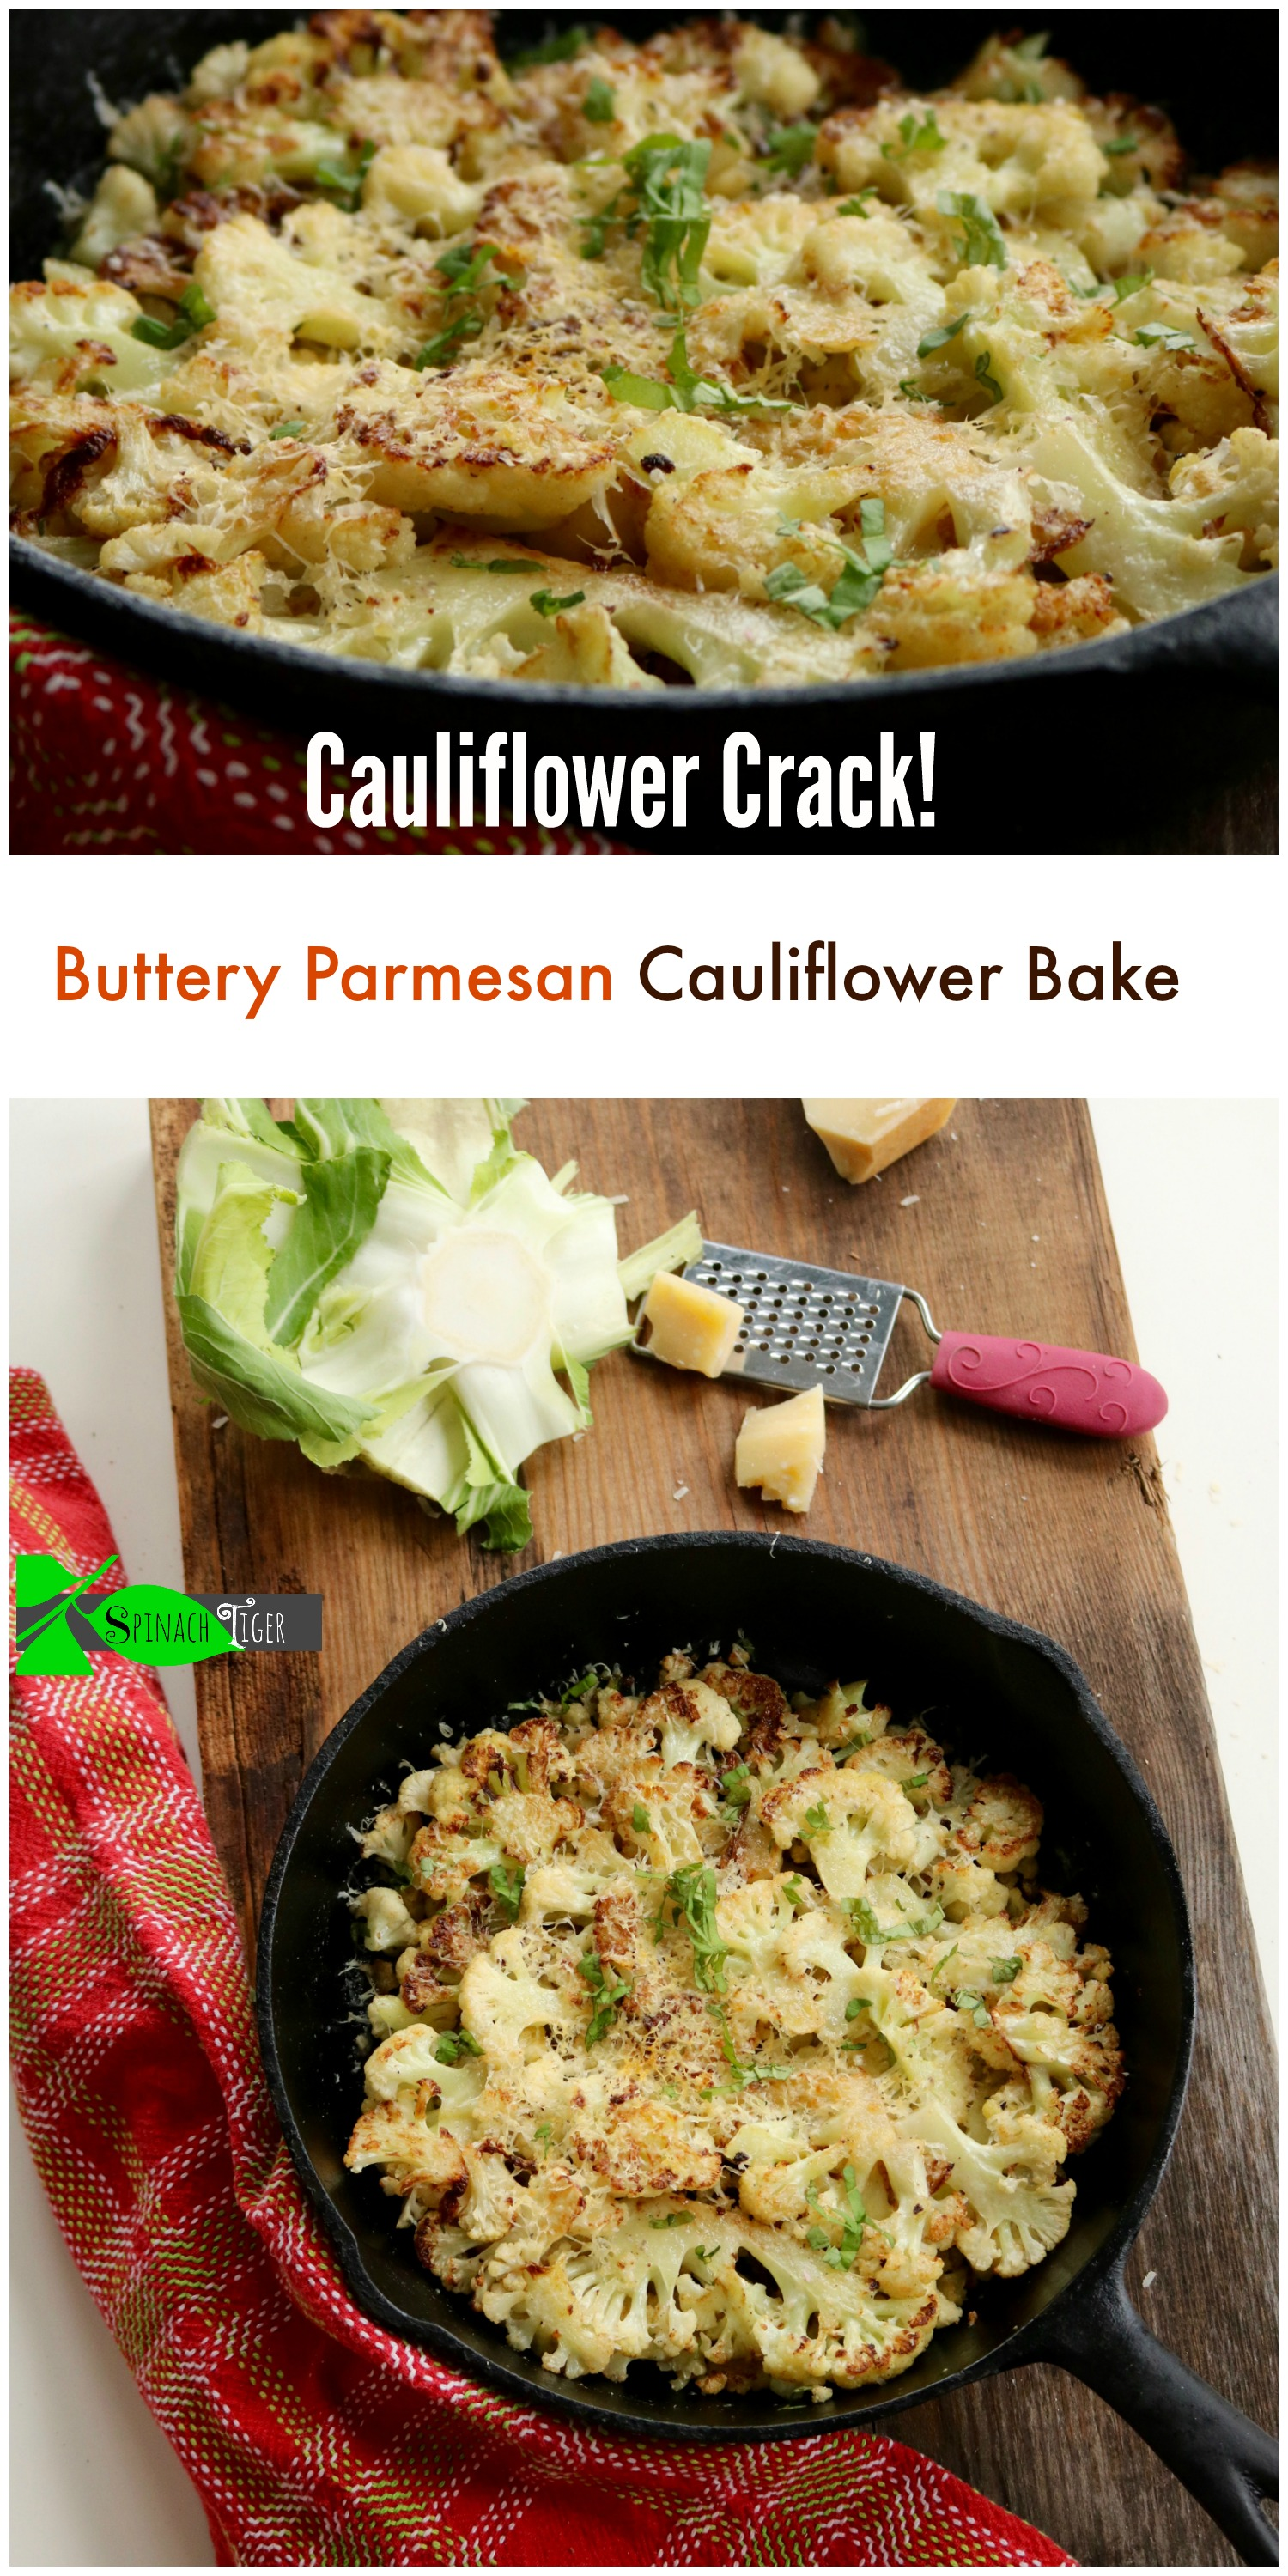 How to Make Buttery Parmesan Oven Roasted Cauliflower Recipe from Spinach Tiger